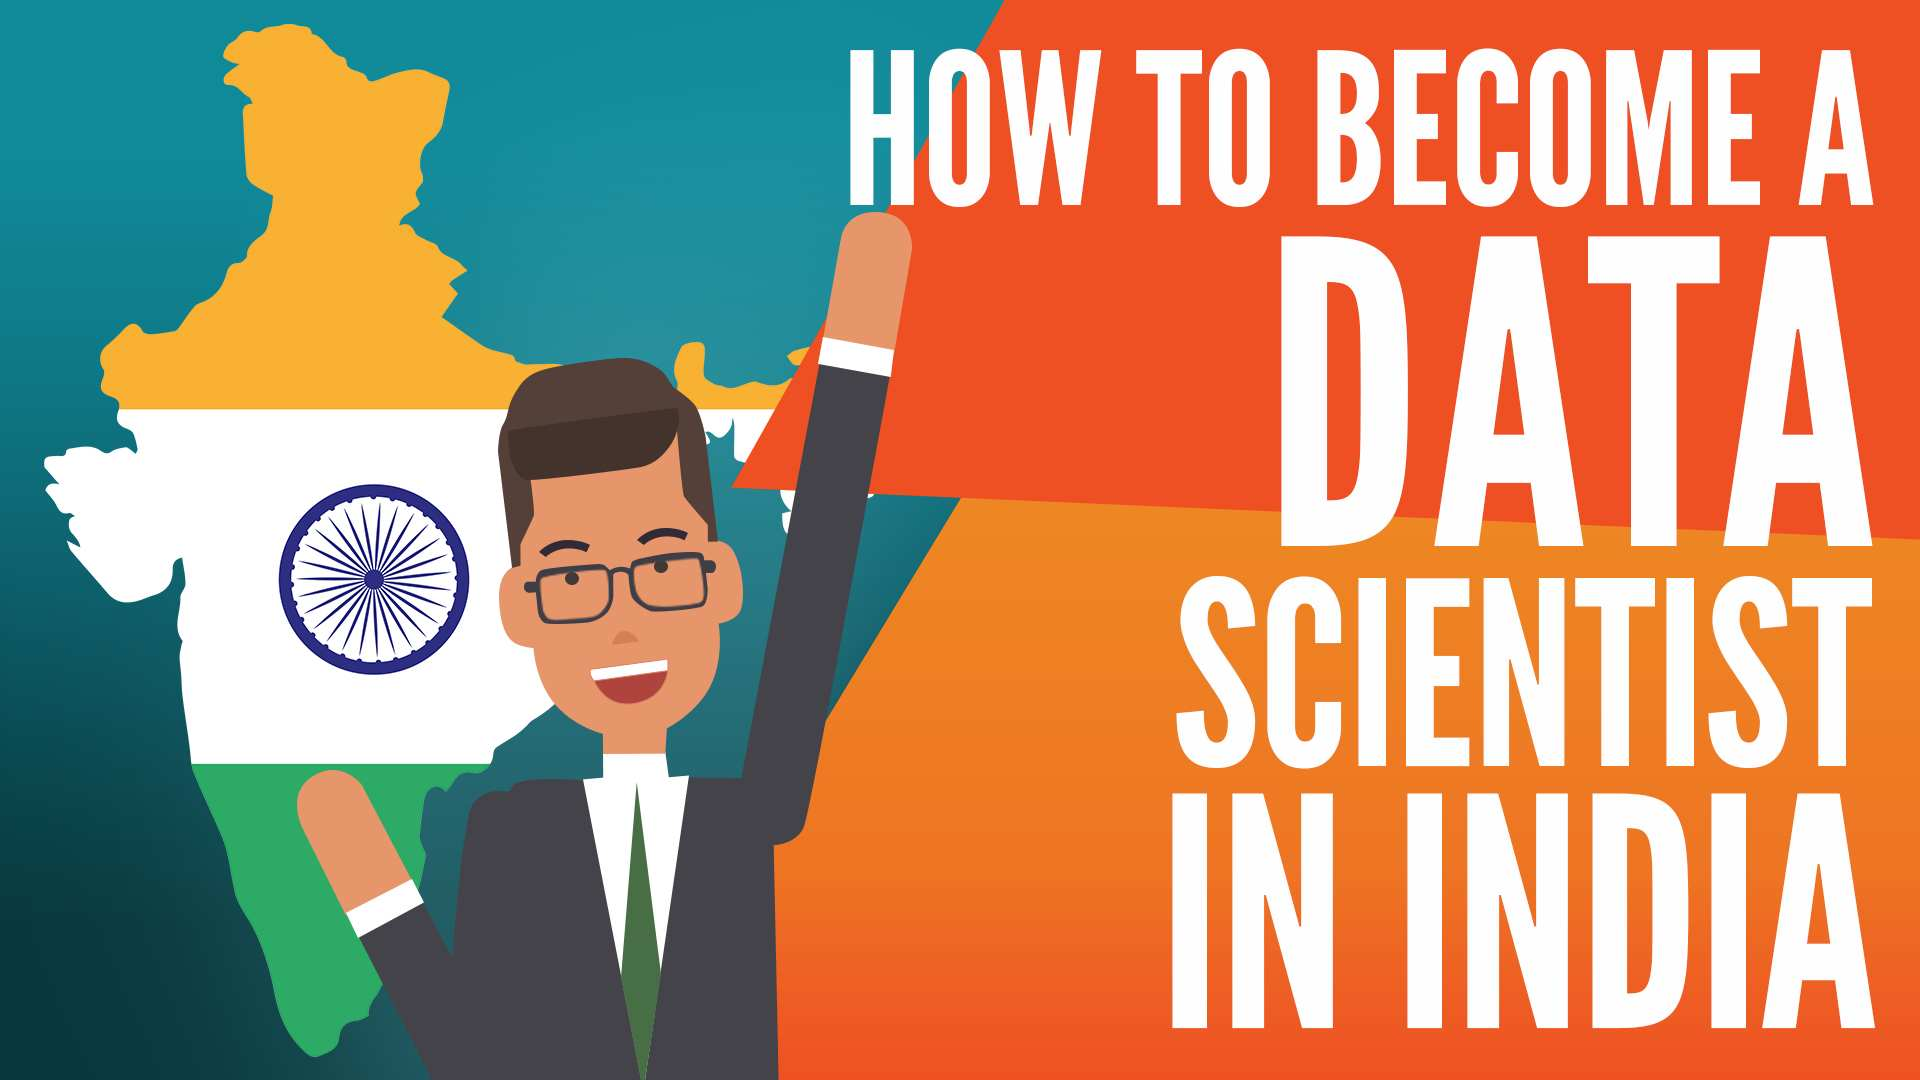 How to Become a Data Scientist in India: Salary, Job Outlook & Skills